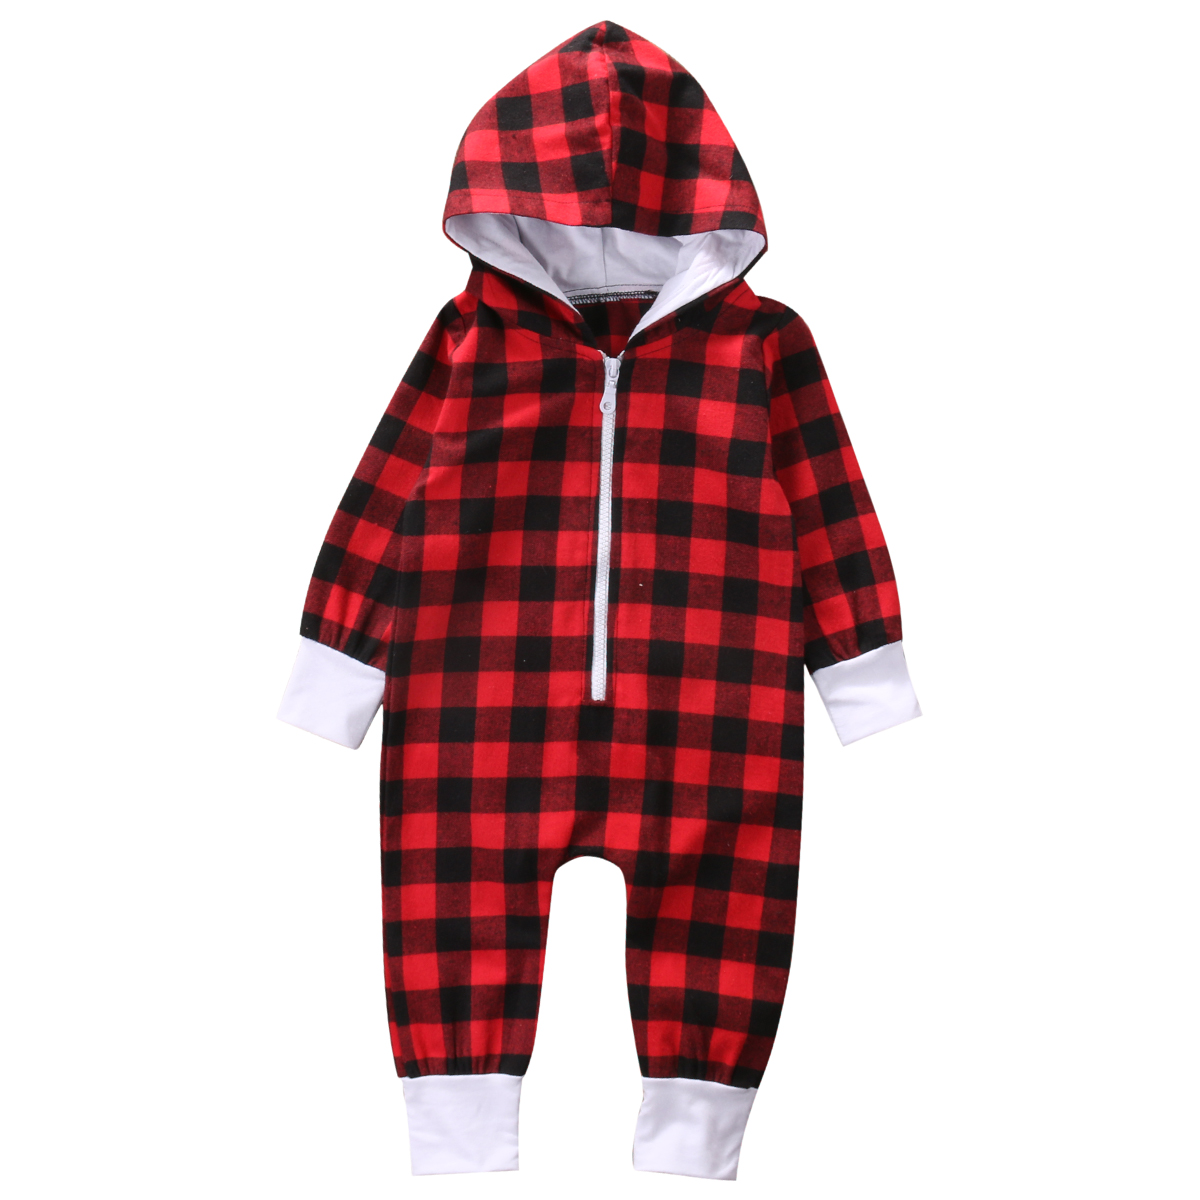 2017 All Seasons Infants Baby Boys Girsl Hooded Clothes Long Sleeve Cotton Rompers Jumpsuit  Outfits Set